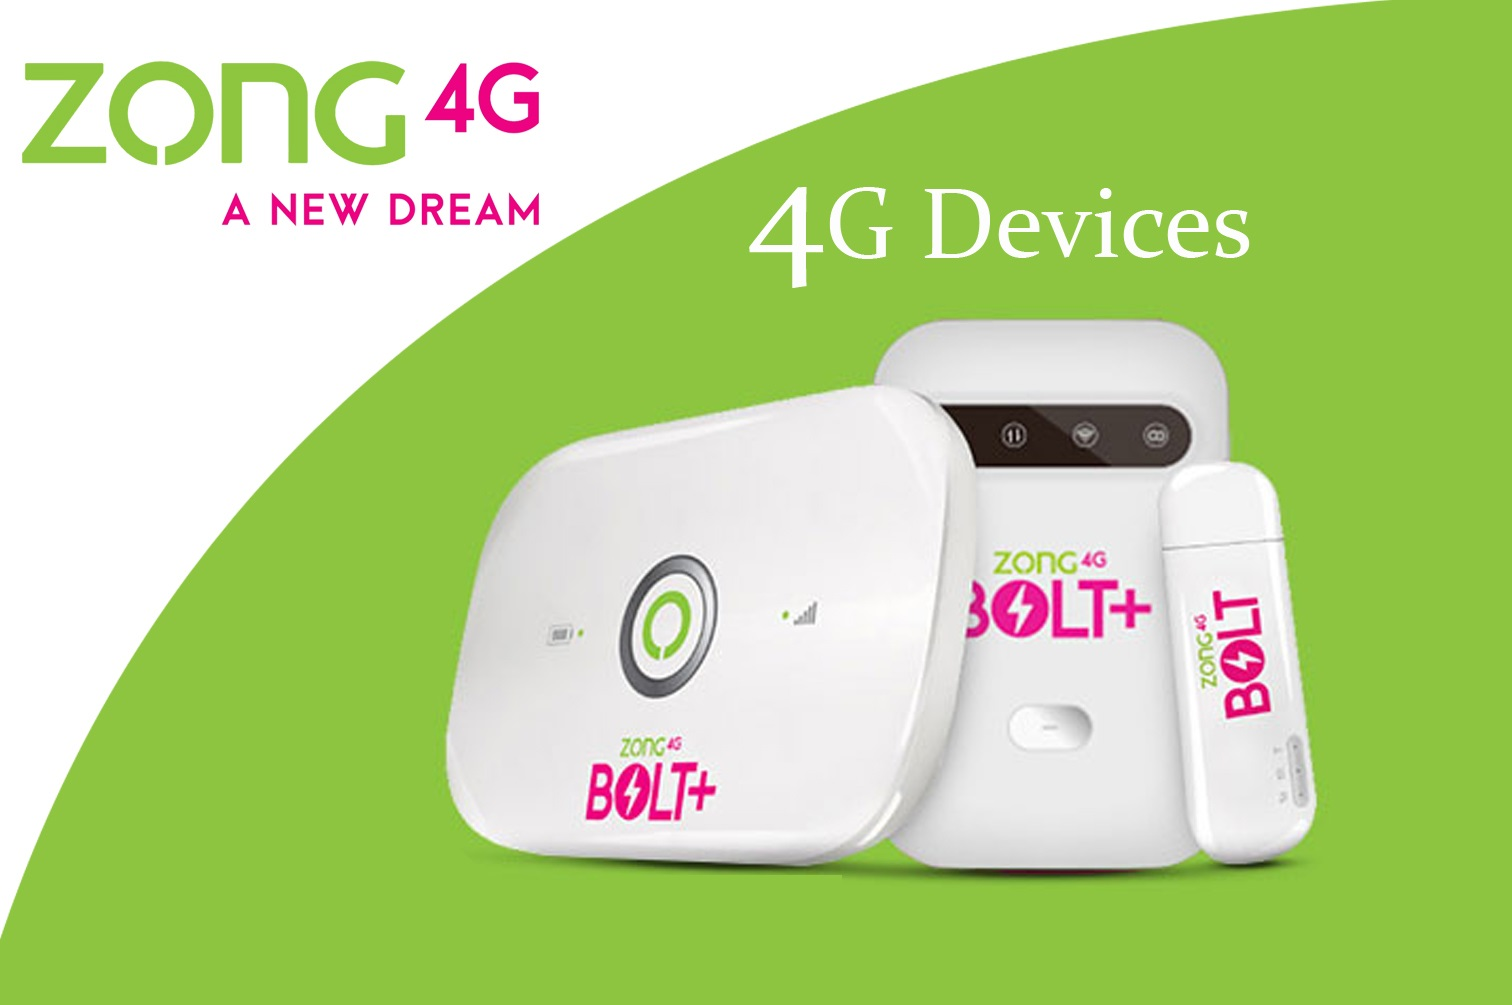 Zong 4g Device Packages in 2021